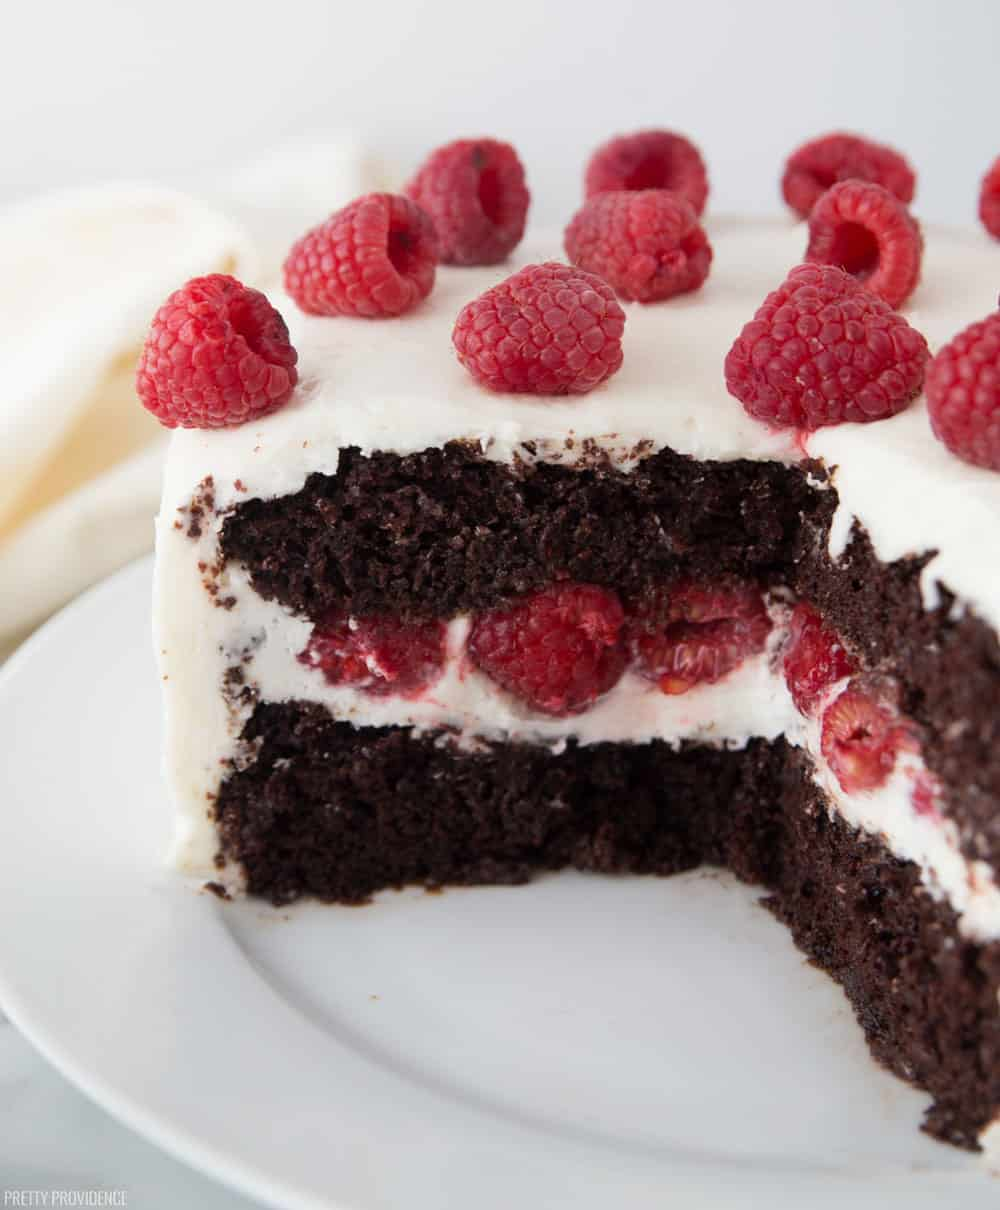 Chocolate Raspberry Cake with Cream Cheese Frosting and Fresh Raspberries in the middle and on top